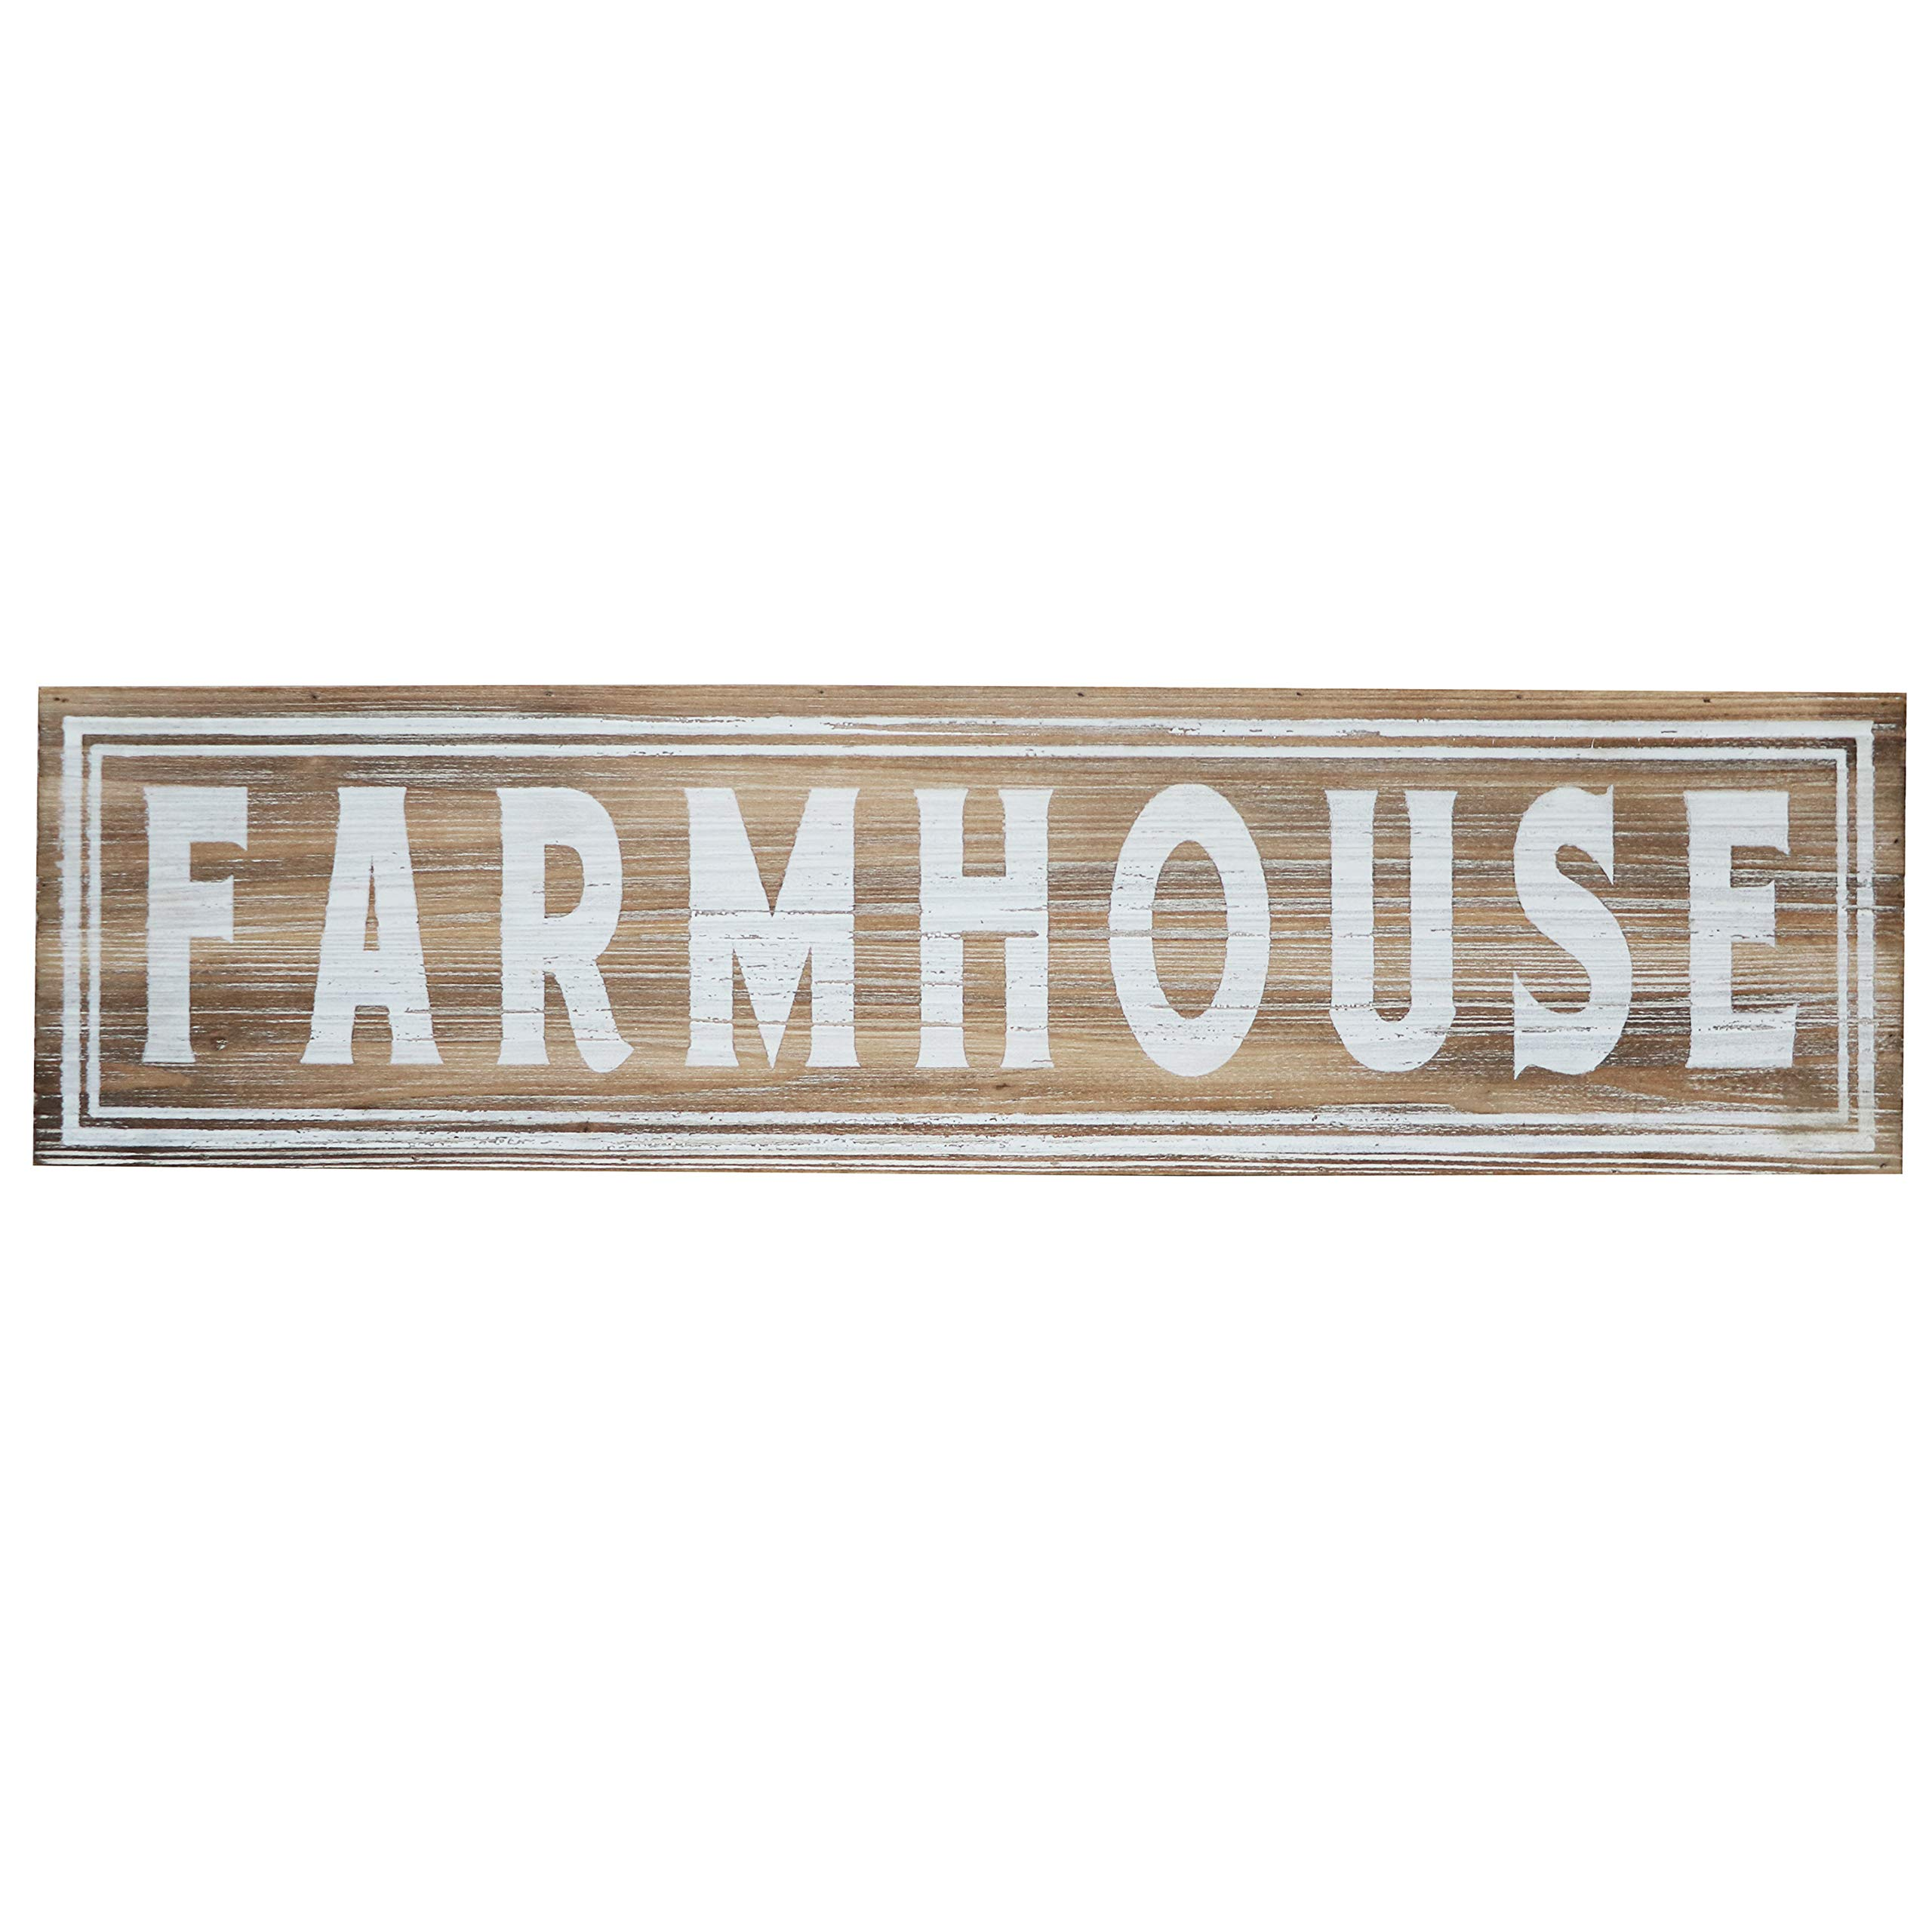 "Barnyard Designs Large Wooden Farmhouse Sign Rustic Vintage Primitive Country Wall Decor 30"" x 8"""